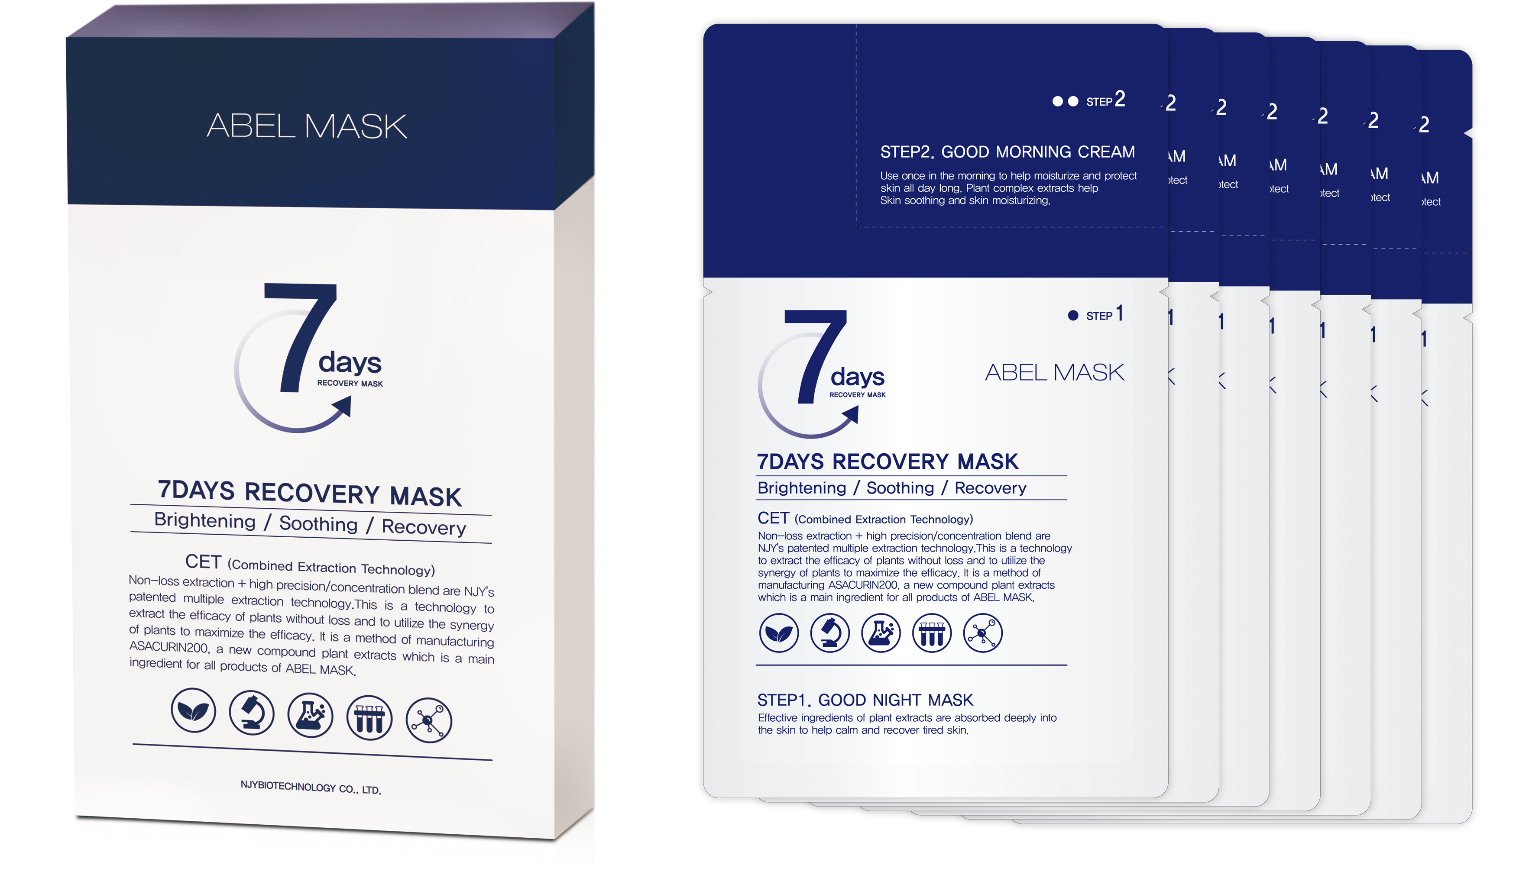 7 Days Recovery Mask